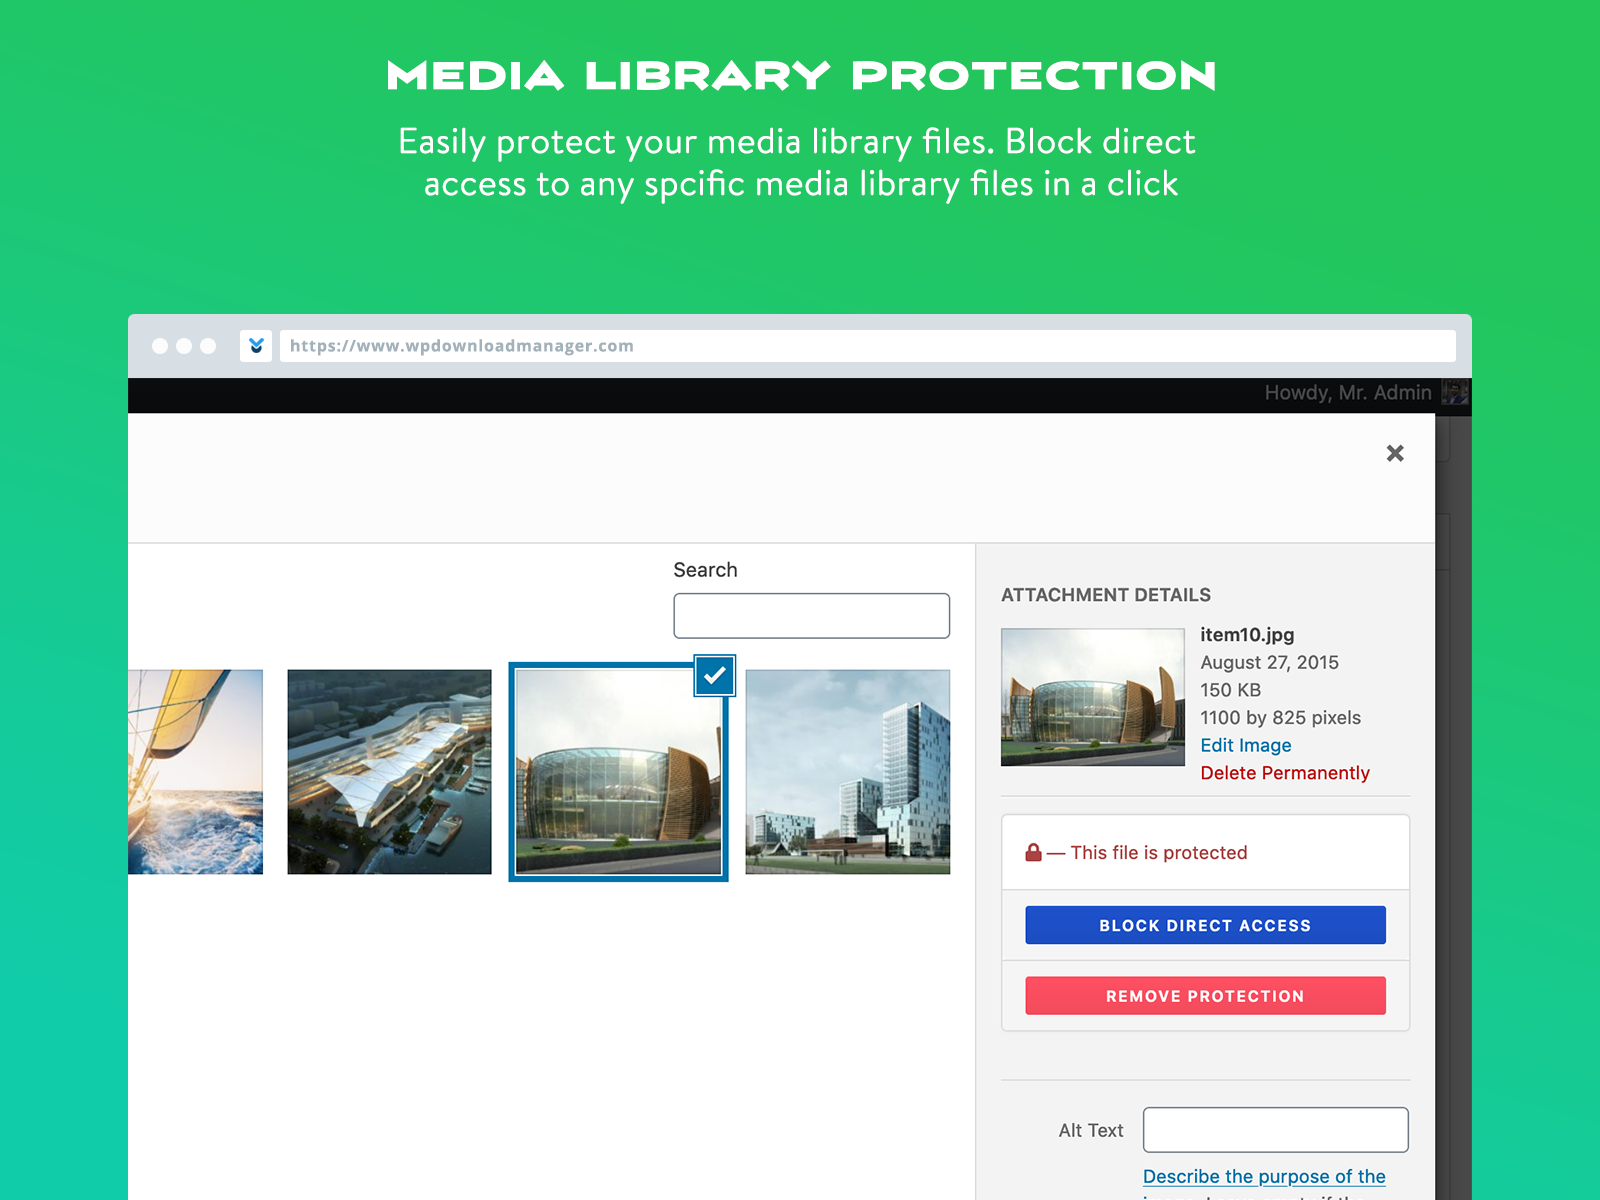 Media library protection